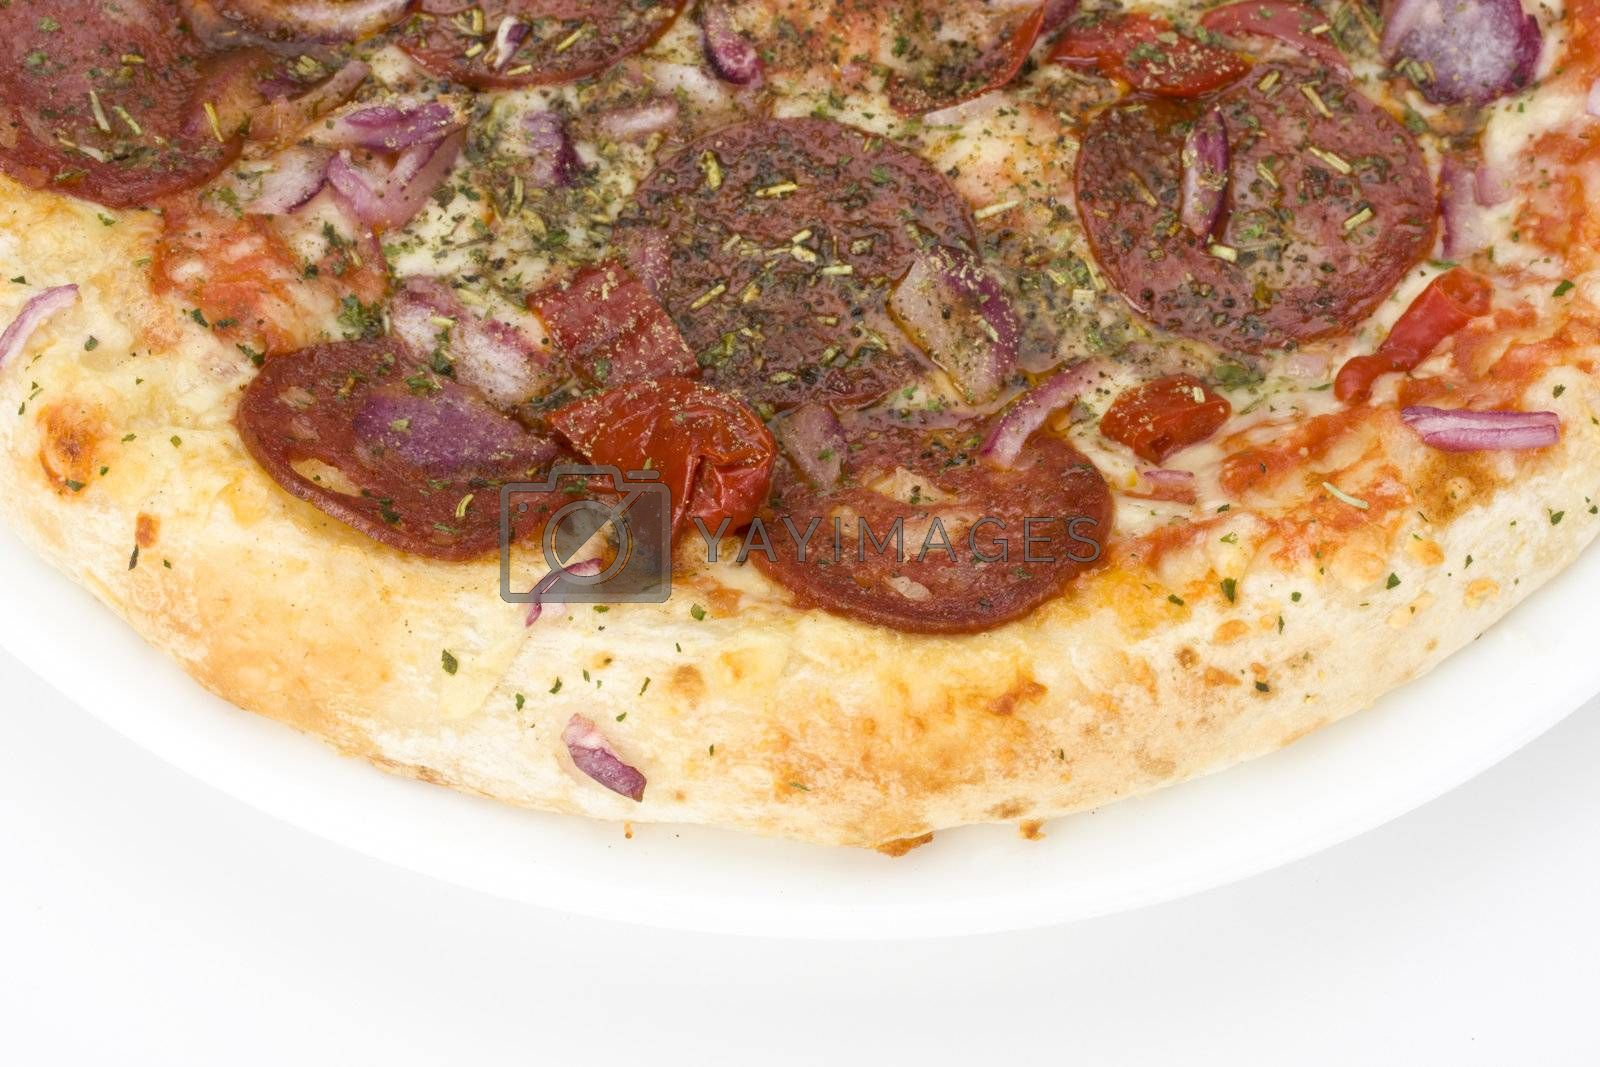 a pizza on a white plate over light grey background